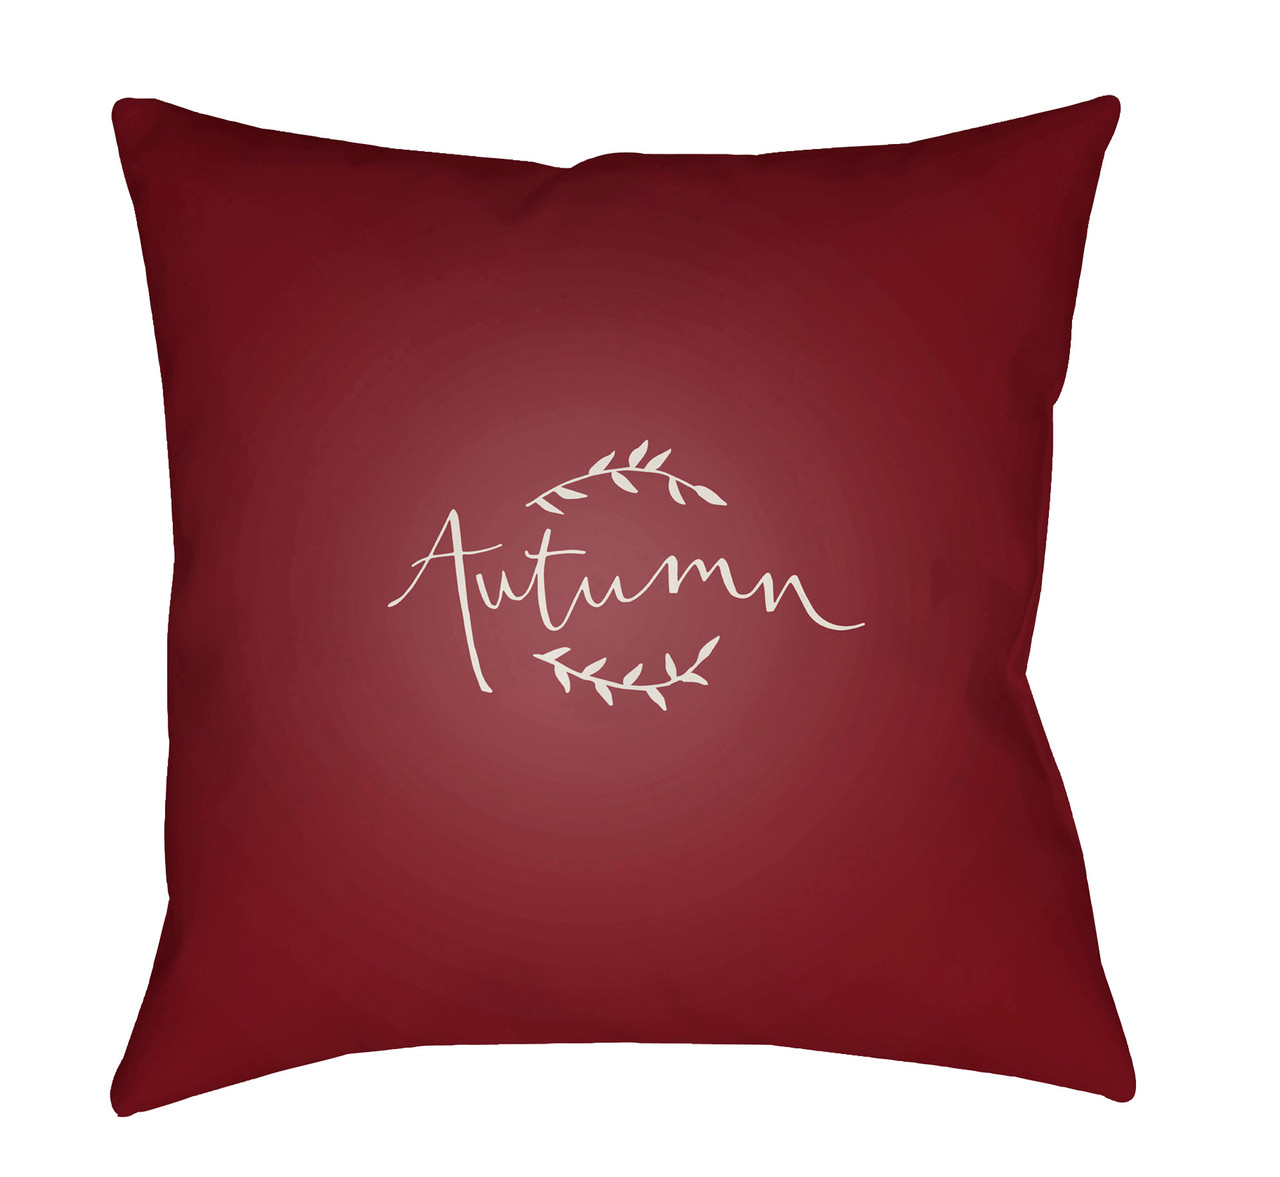 20 Wine Red White Autumn Printed Square Throw Pillow Cover Christmas Central